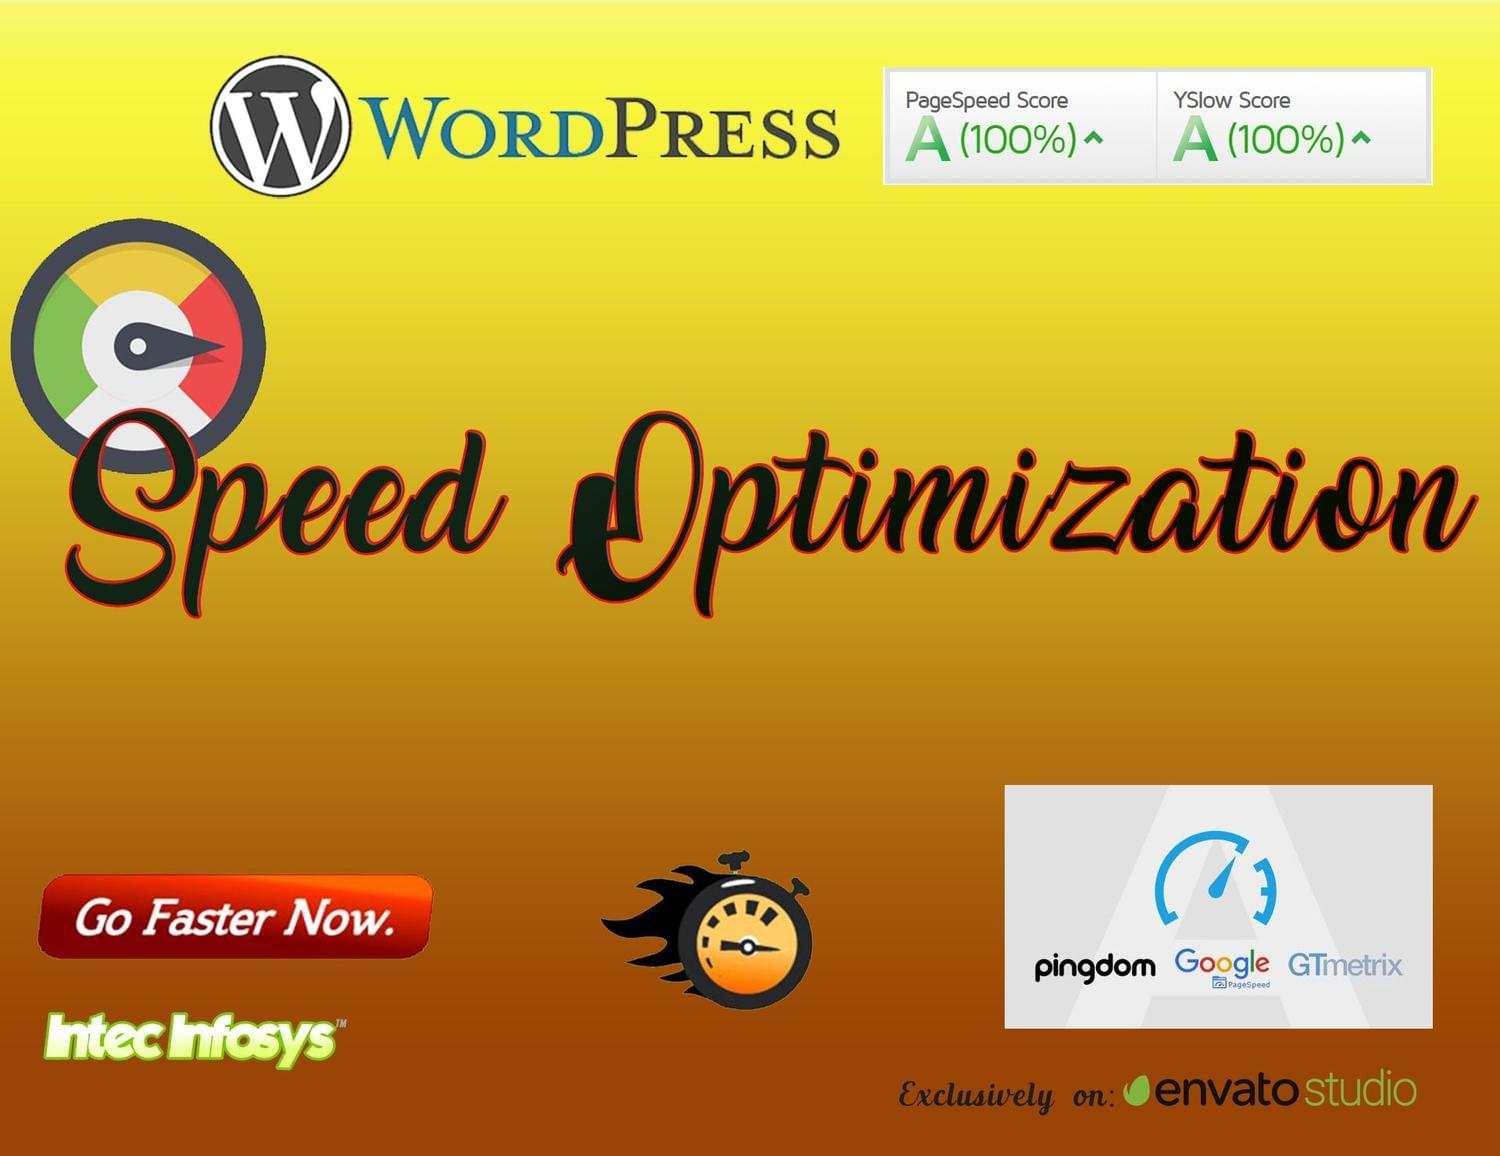 WordPress Speed up and Speed Optimization Service by intecinfosys - 114285